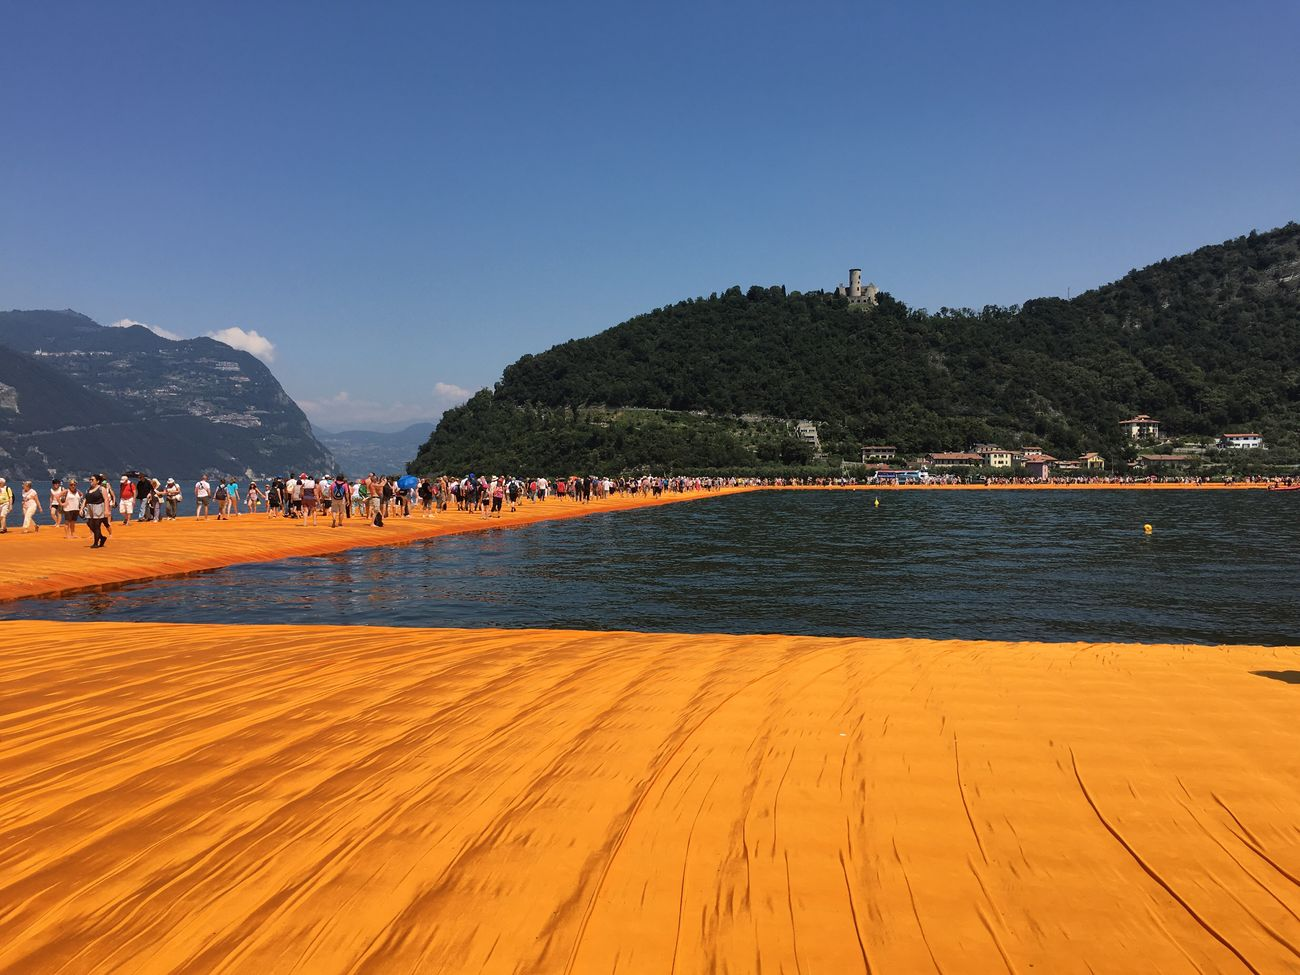 Iseo Lake Installation Art Memories Of Summer Summer2016 Ponte Galleggiante Ponte Di Christo ArtWork Orange Blue Bridge Water Mountain Sky Clear Sky Amazing Place People Walking On The Water